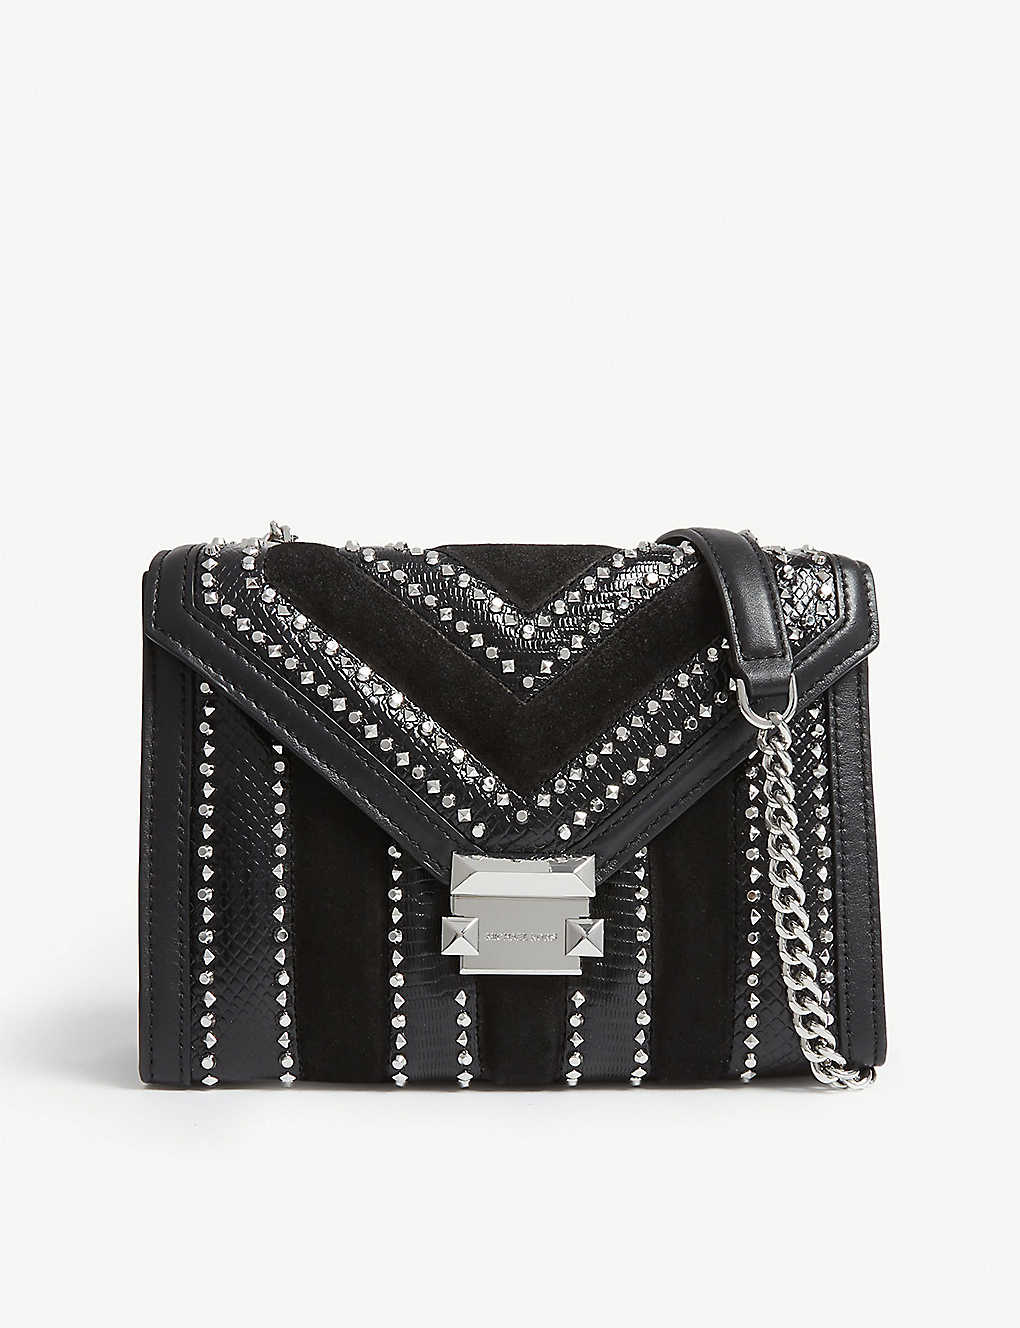 MICHAEL MICHAEL KORS - Whitney studded leather shoulder bag ... 23462655be84f